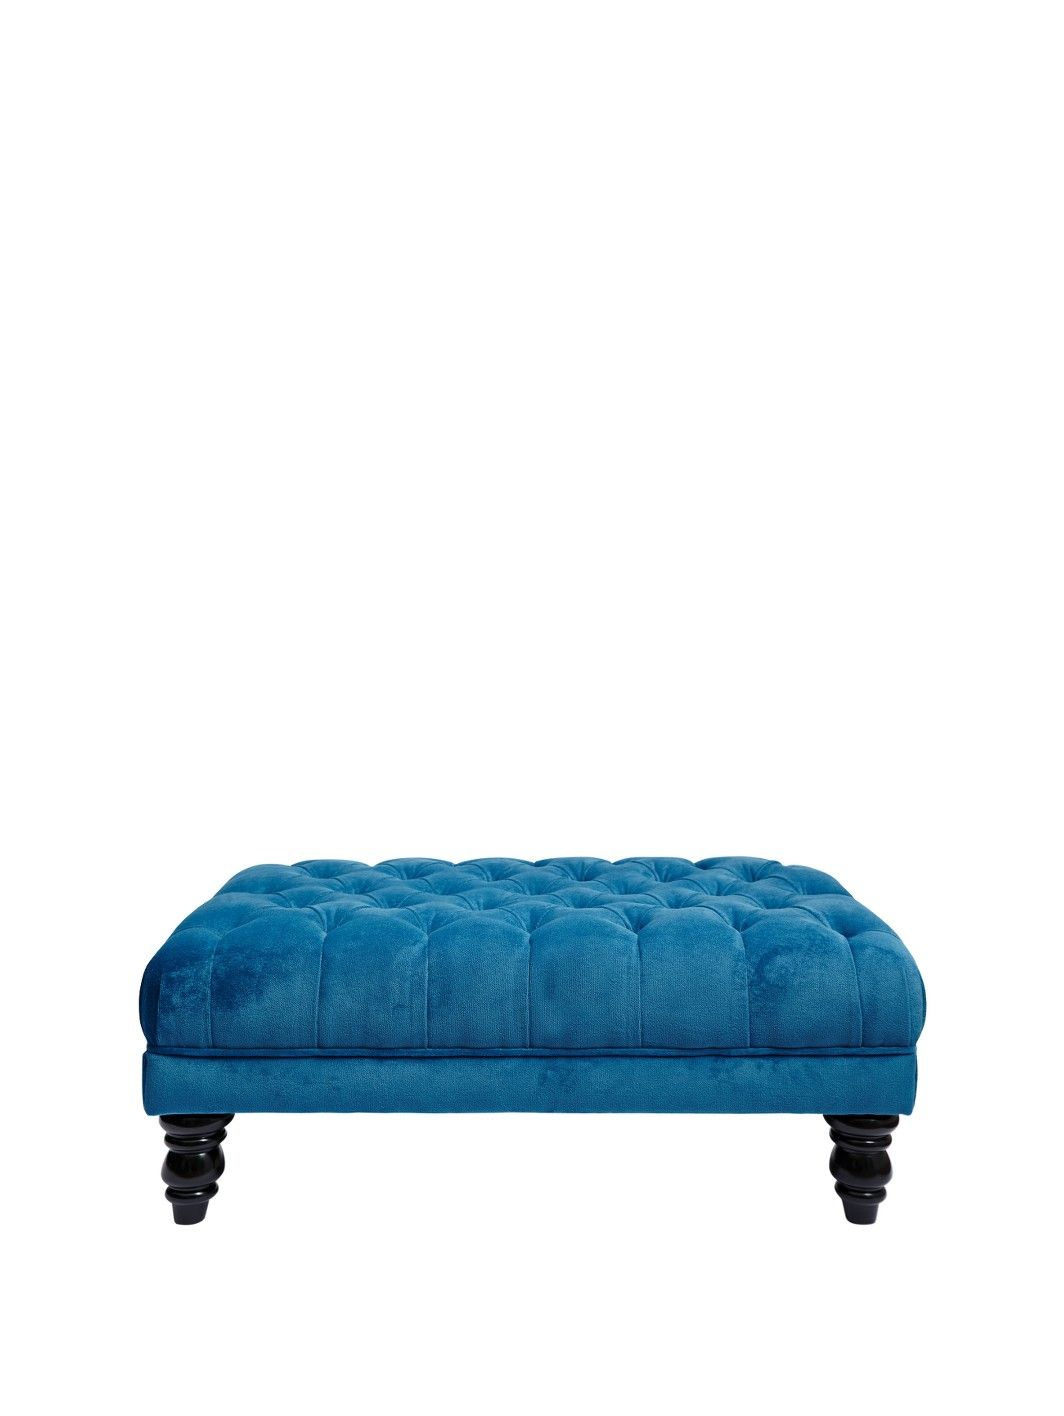 fearne cotton sofa alexis faux suede reviews melrose footstool very co uk furniture